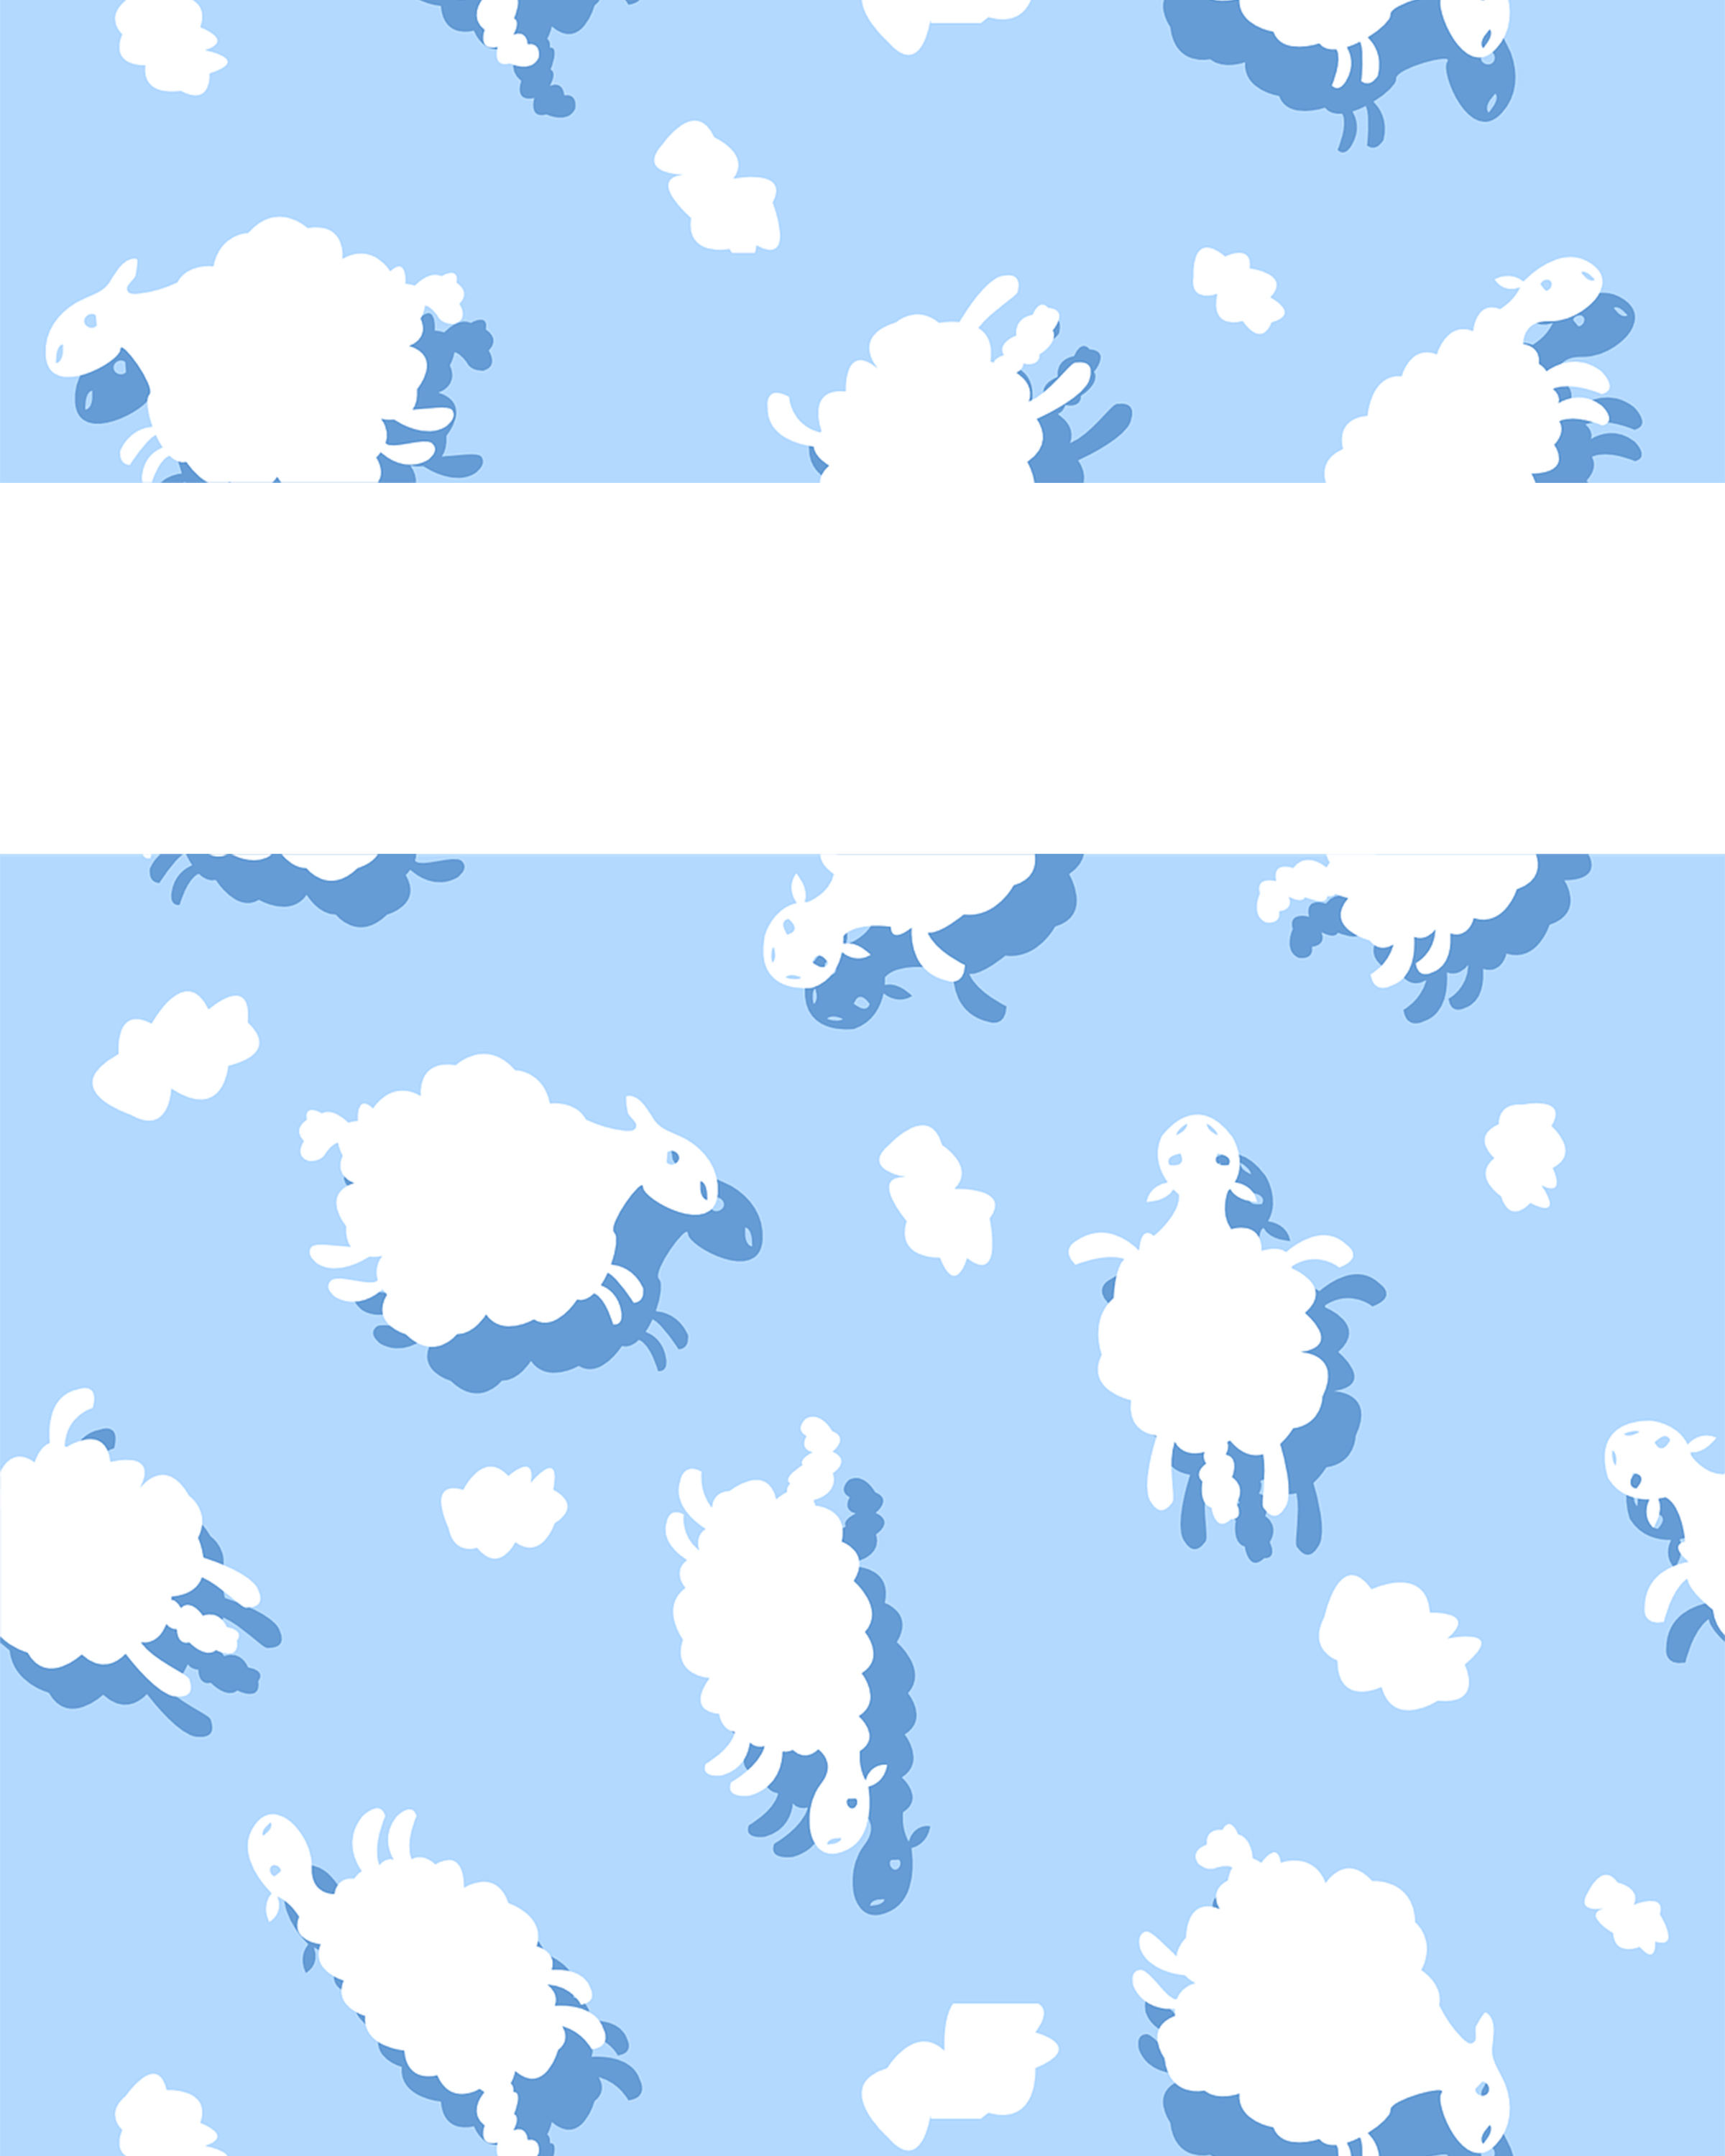 free download back to school binder covers counting sheep